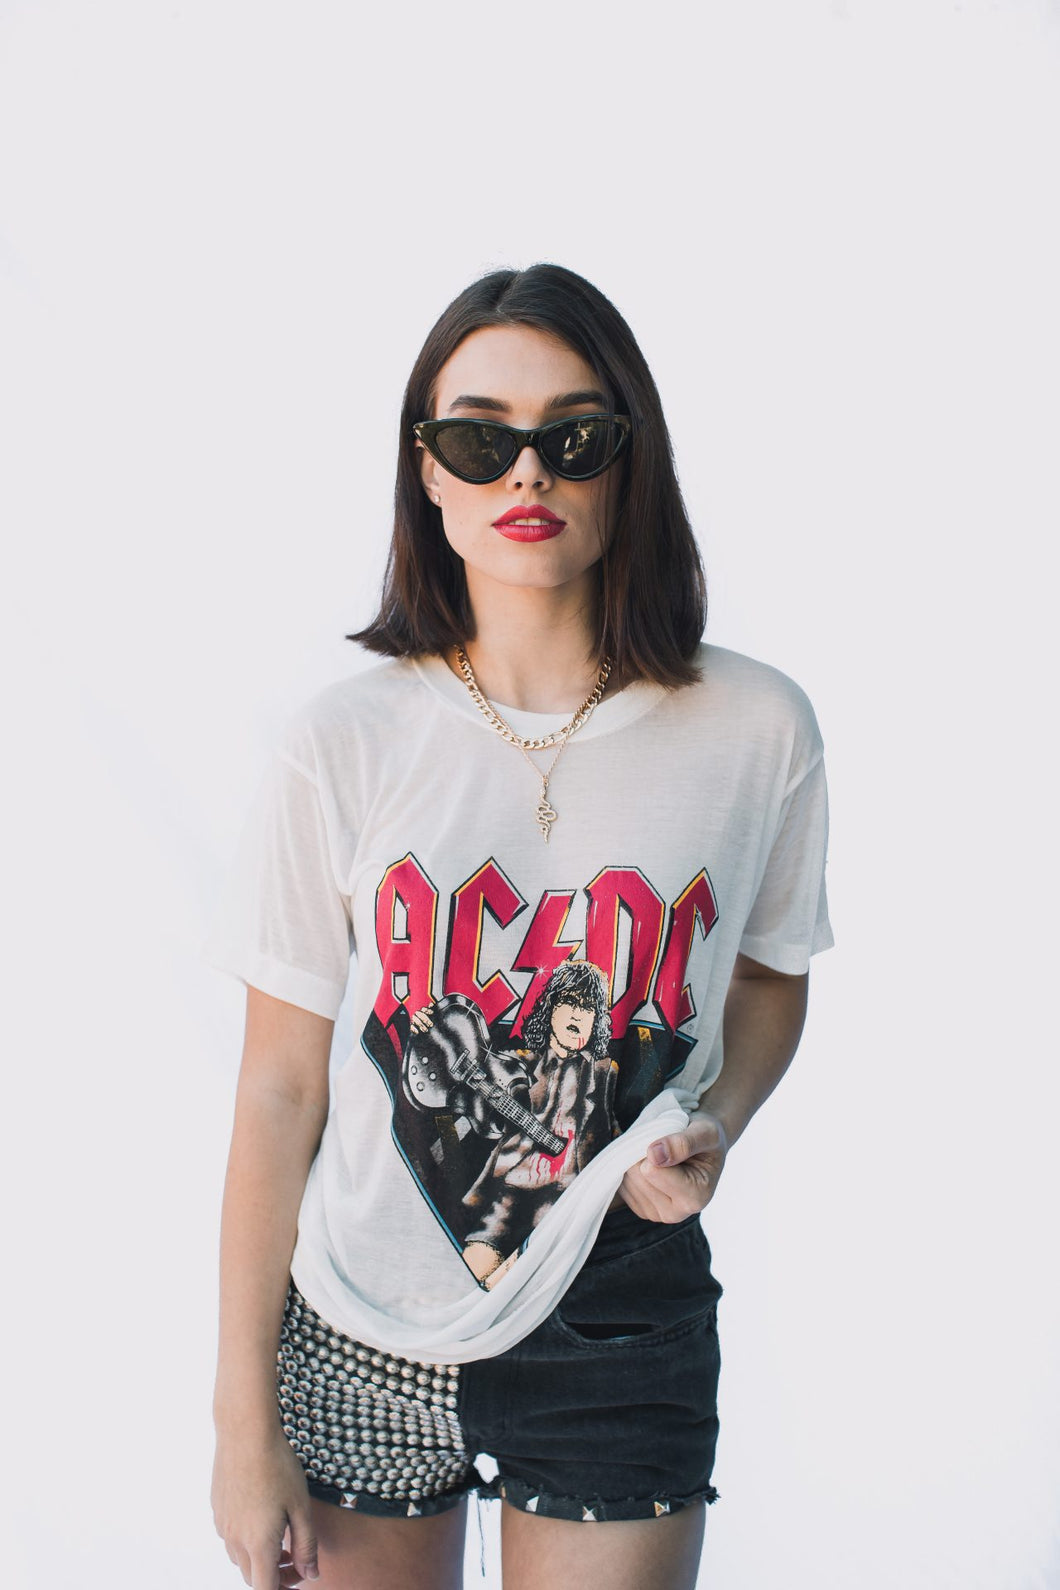 VINTAGE BAND TEE – ACDC gypsy trader